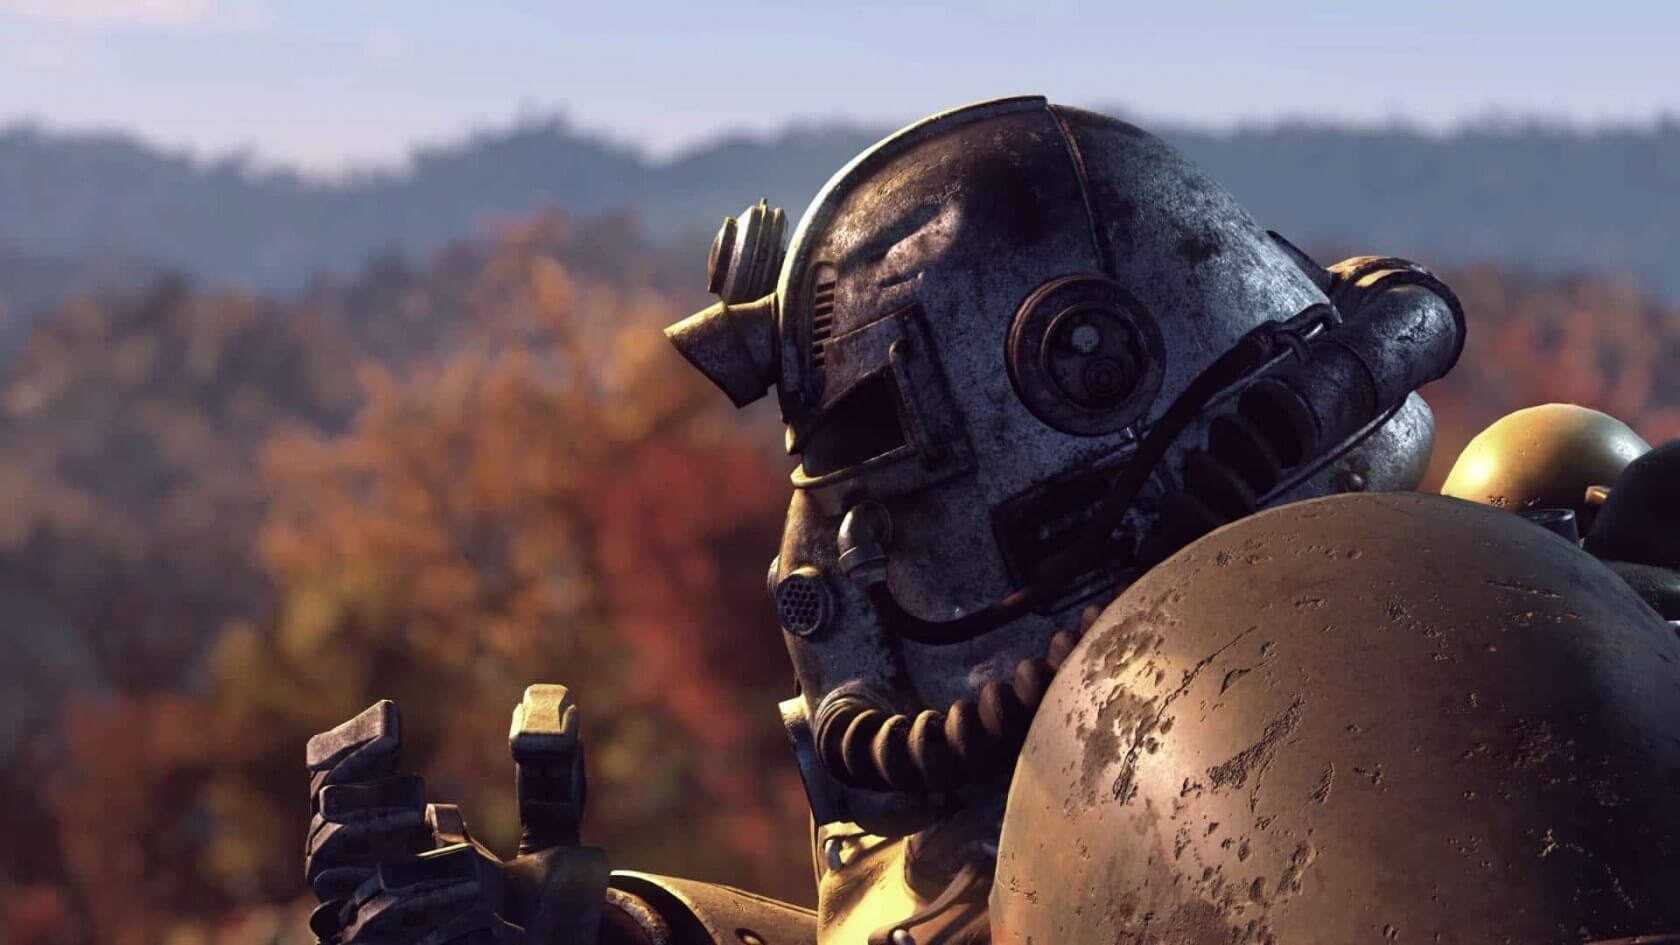 Fallout 76's Countdown to Launch Offers Free PSN Swag, Power Armor Giveaway